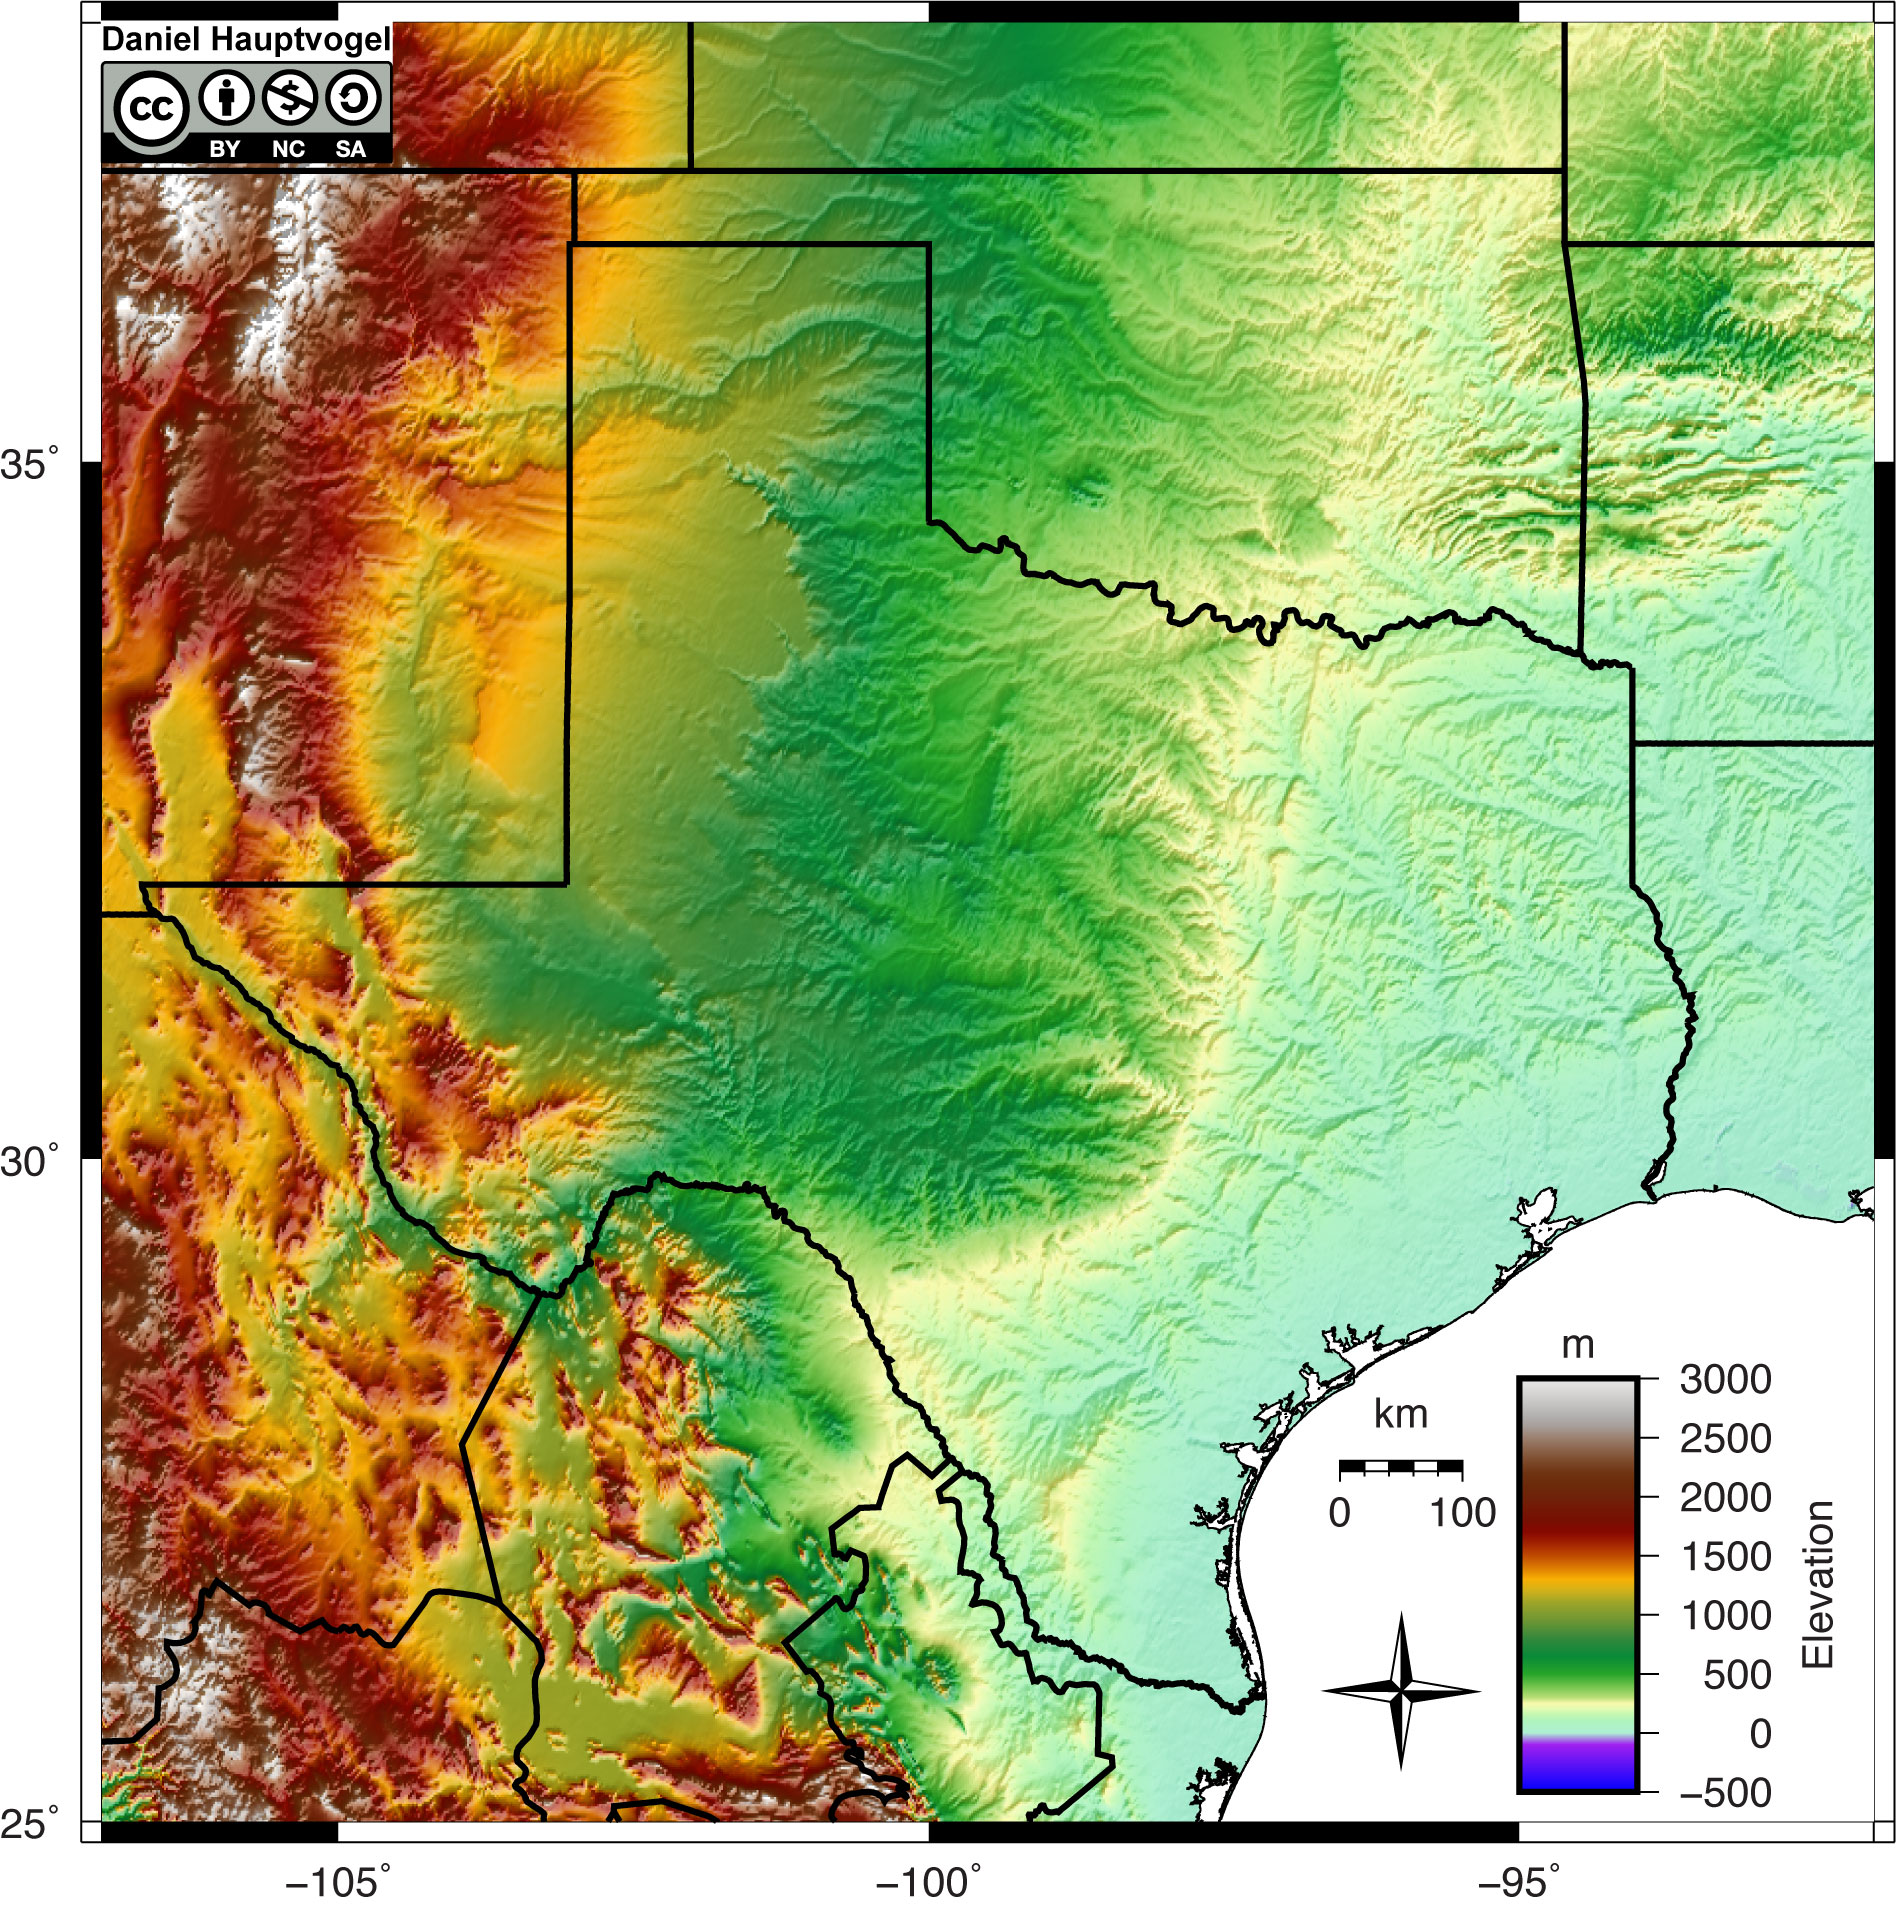 Shaded relief map of Texas.